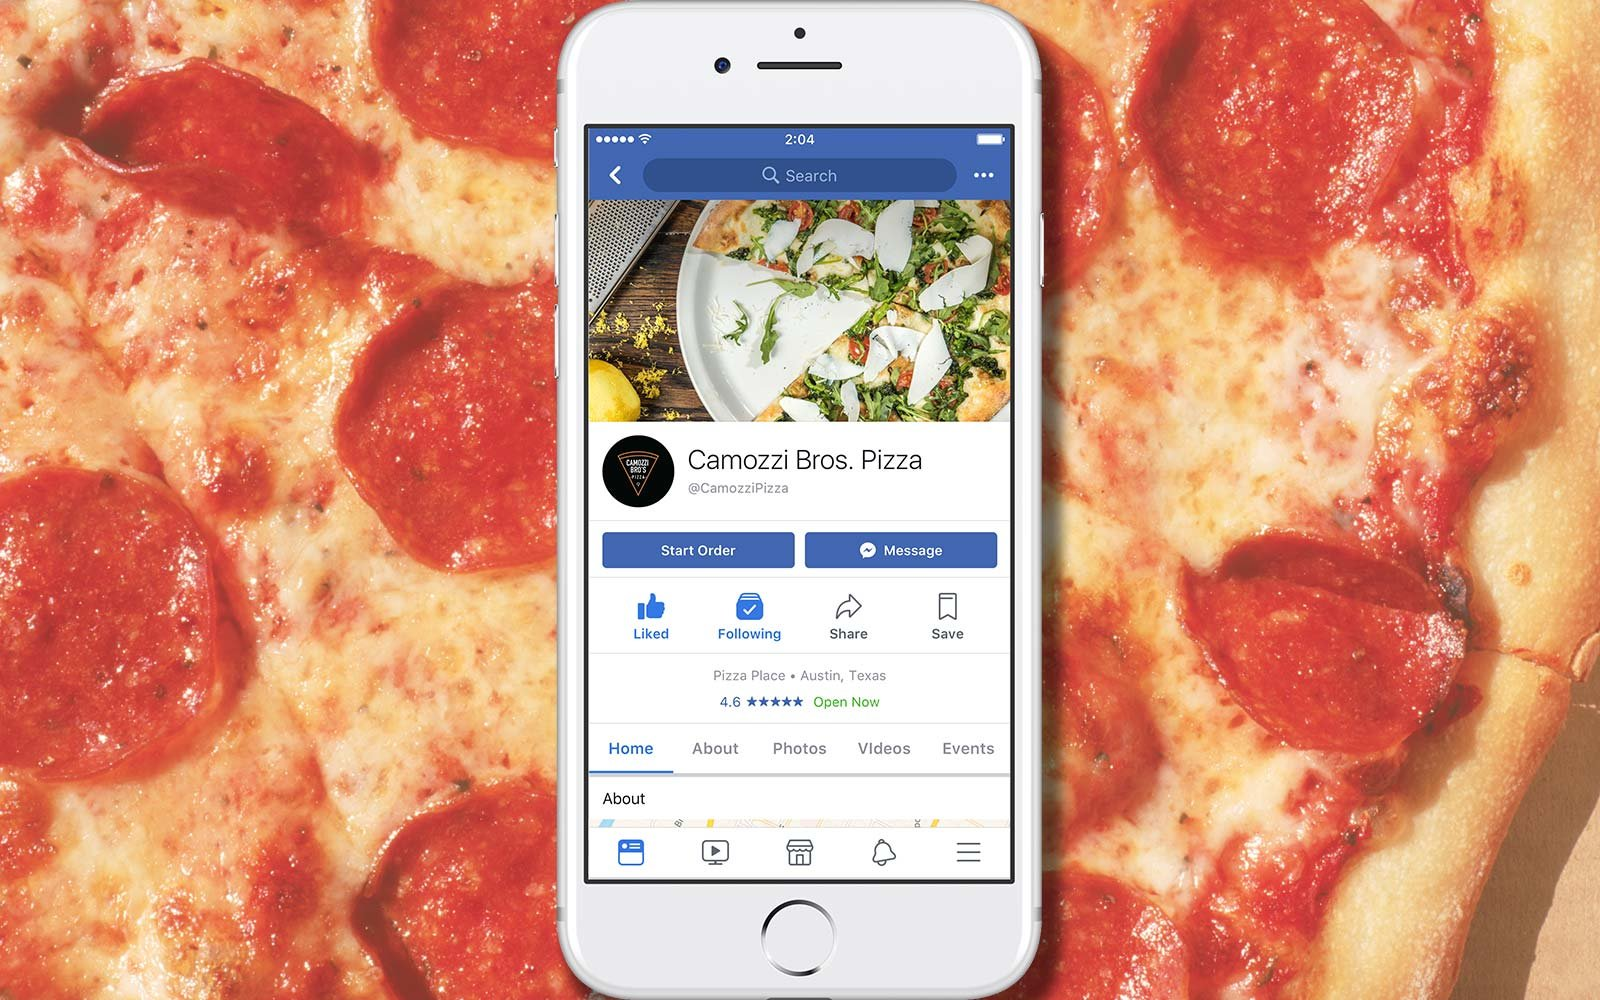 U.S.  customers can now order food through Facebook